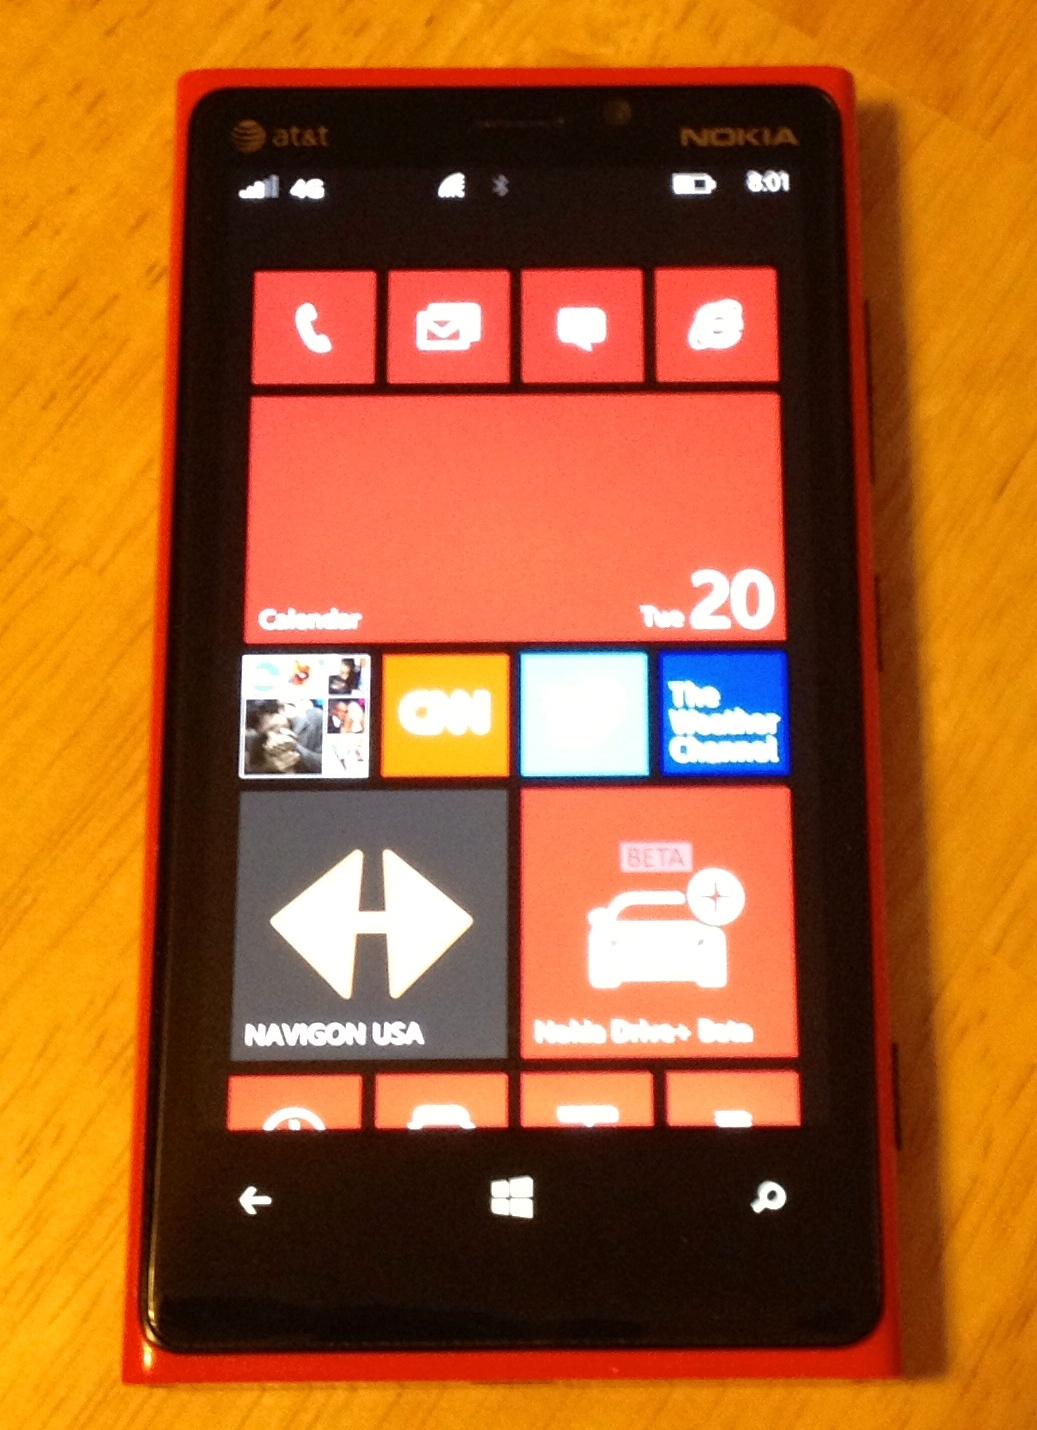 GearDiary Nokia Lumia 920 & Windows Phone 8 - Thoughts from an iPhone & Lumia 900 User